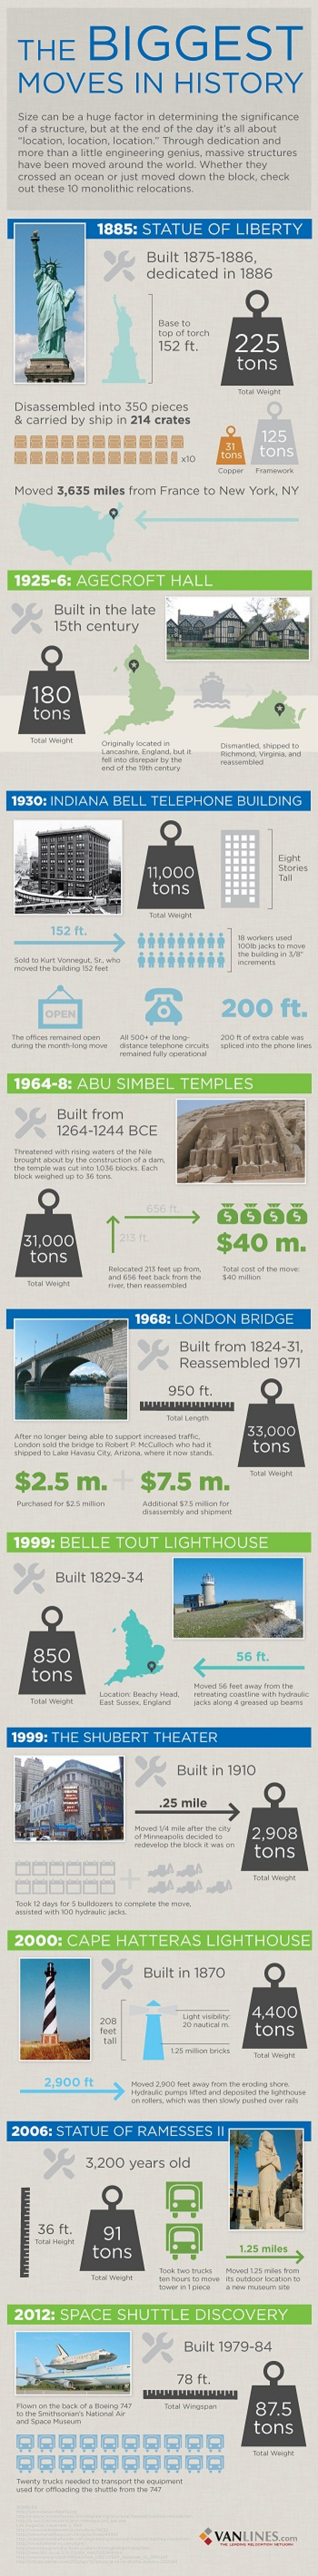 The Biggest Moves in History                          Infographic